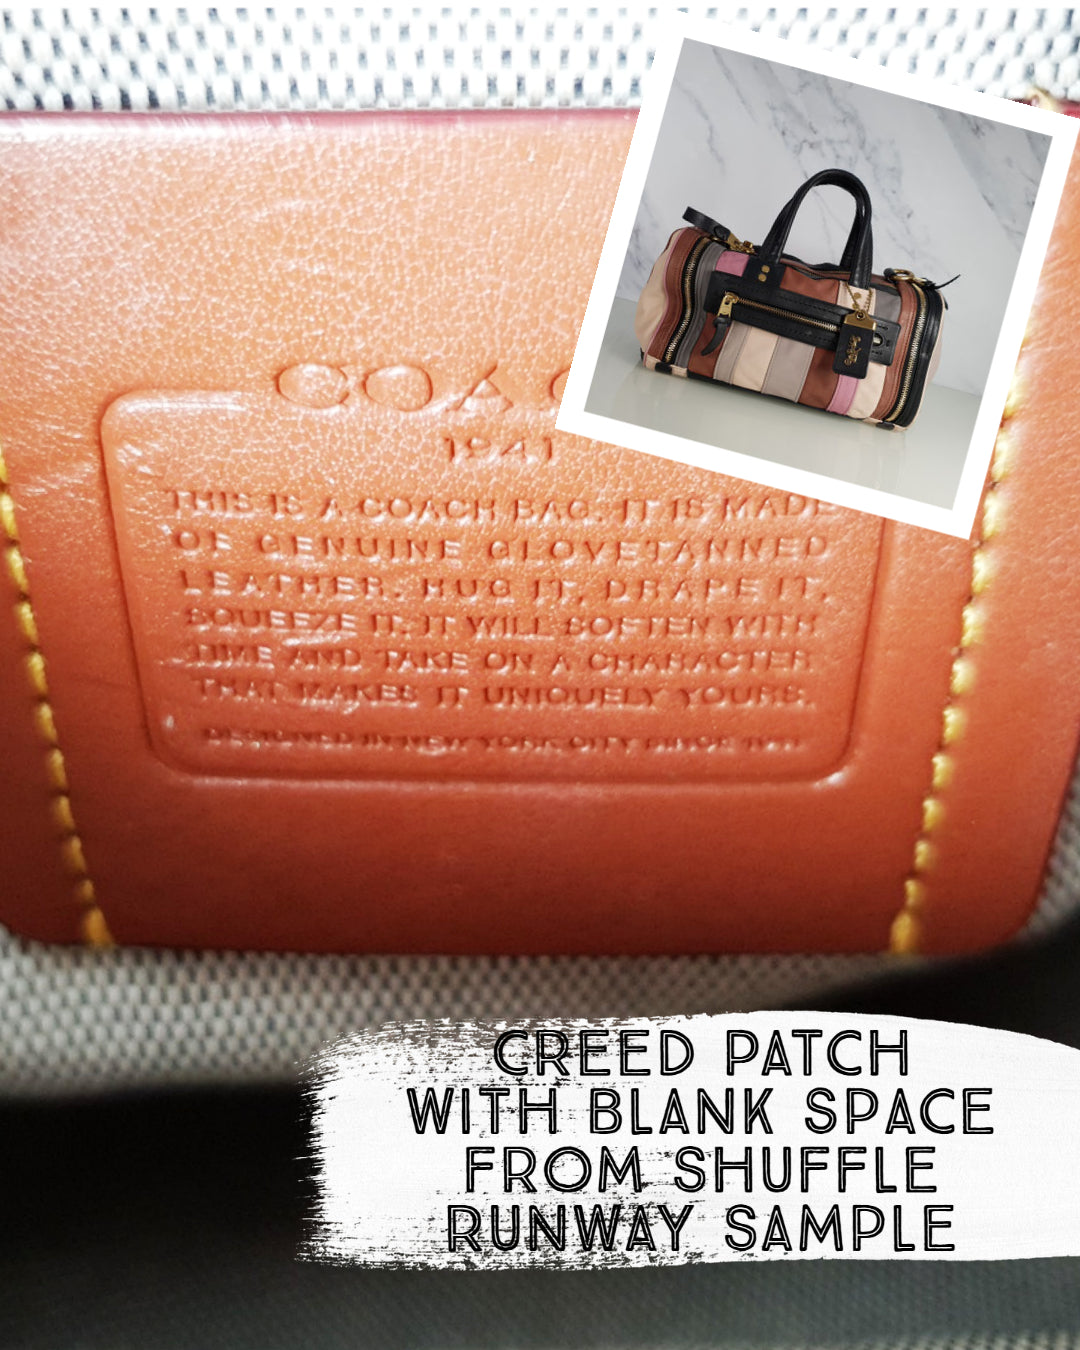 Coach shuffle runway sample bag blank creed patch no style number